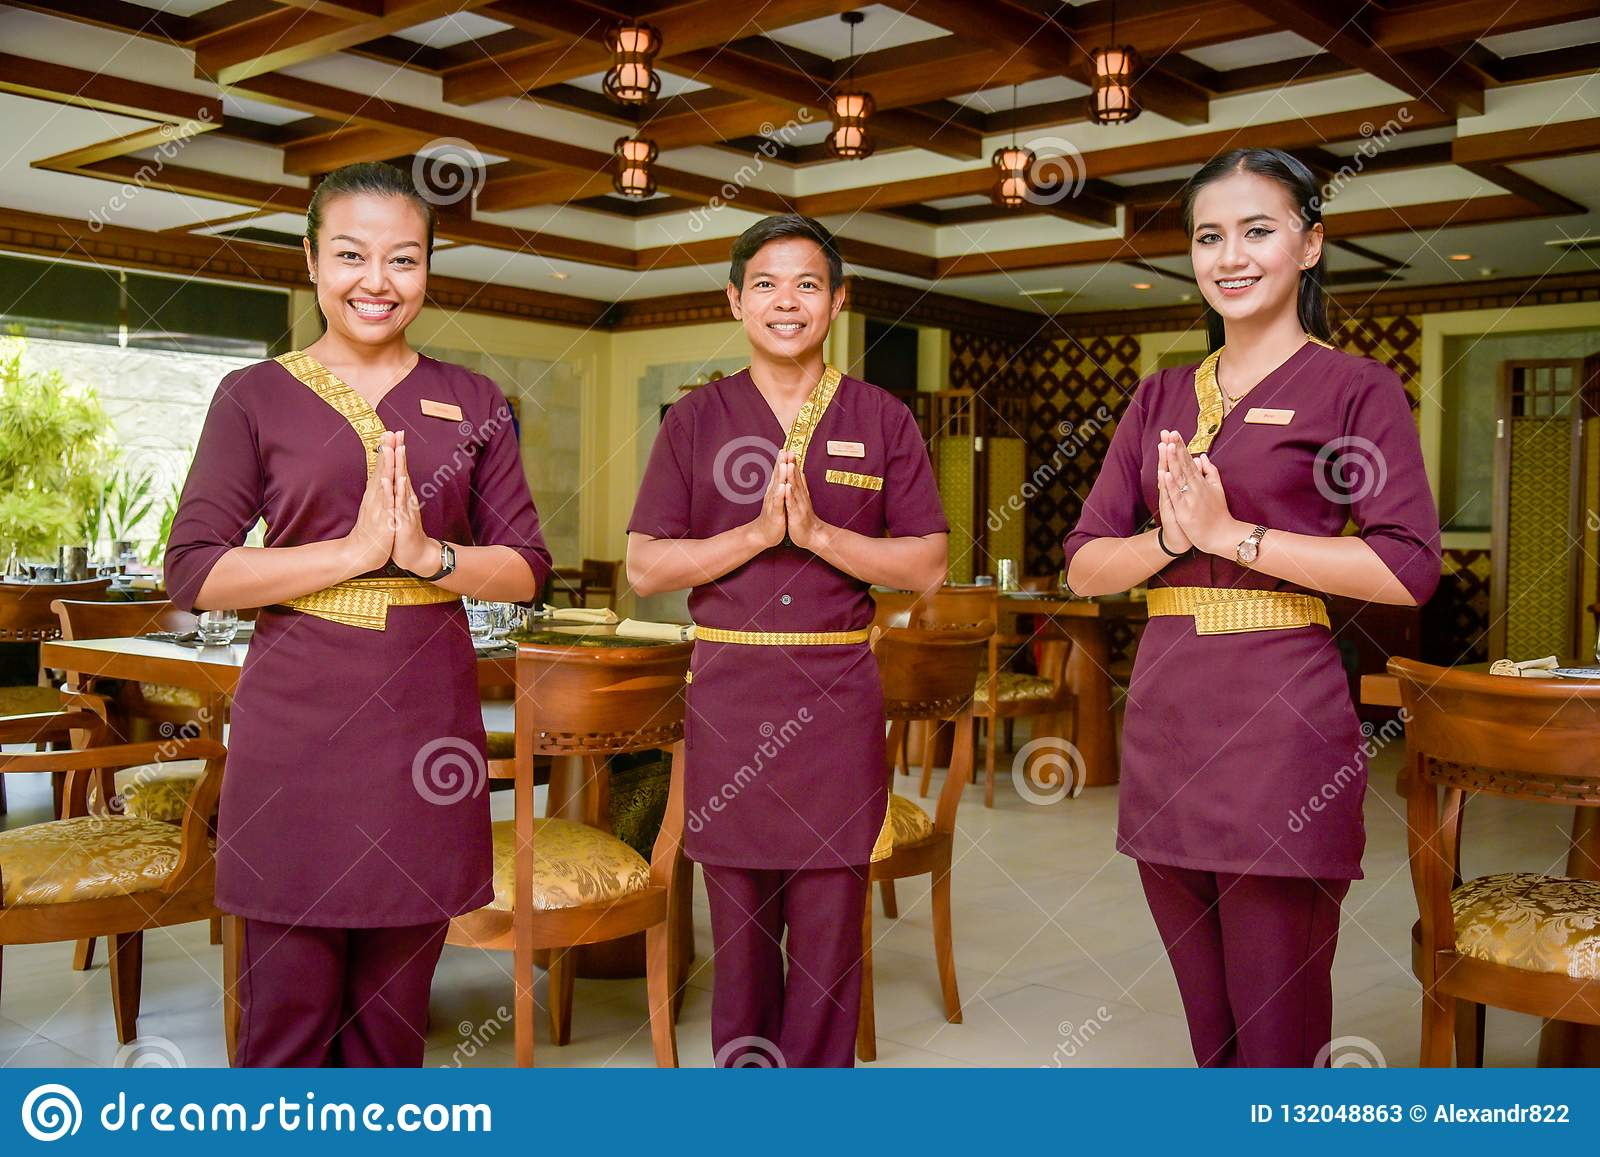 Waiter And Waitress In The Thai Restaurant Standing And Smiling Editorial Stock Photo Image Of Feed Holding 132048863